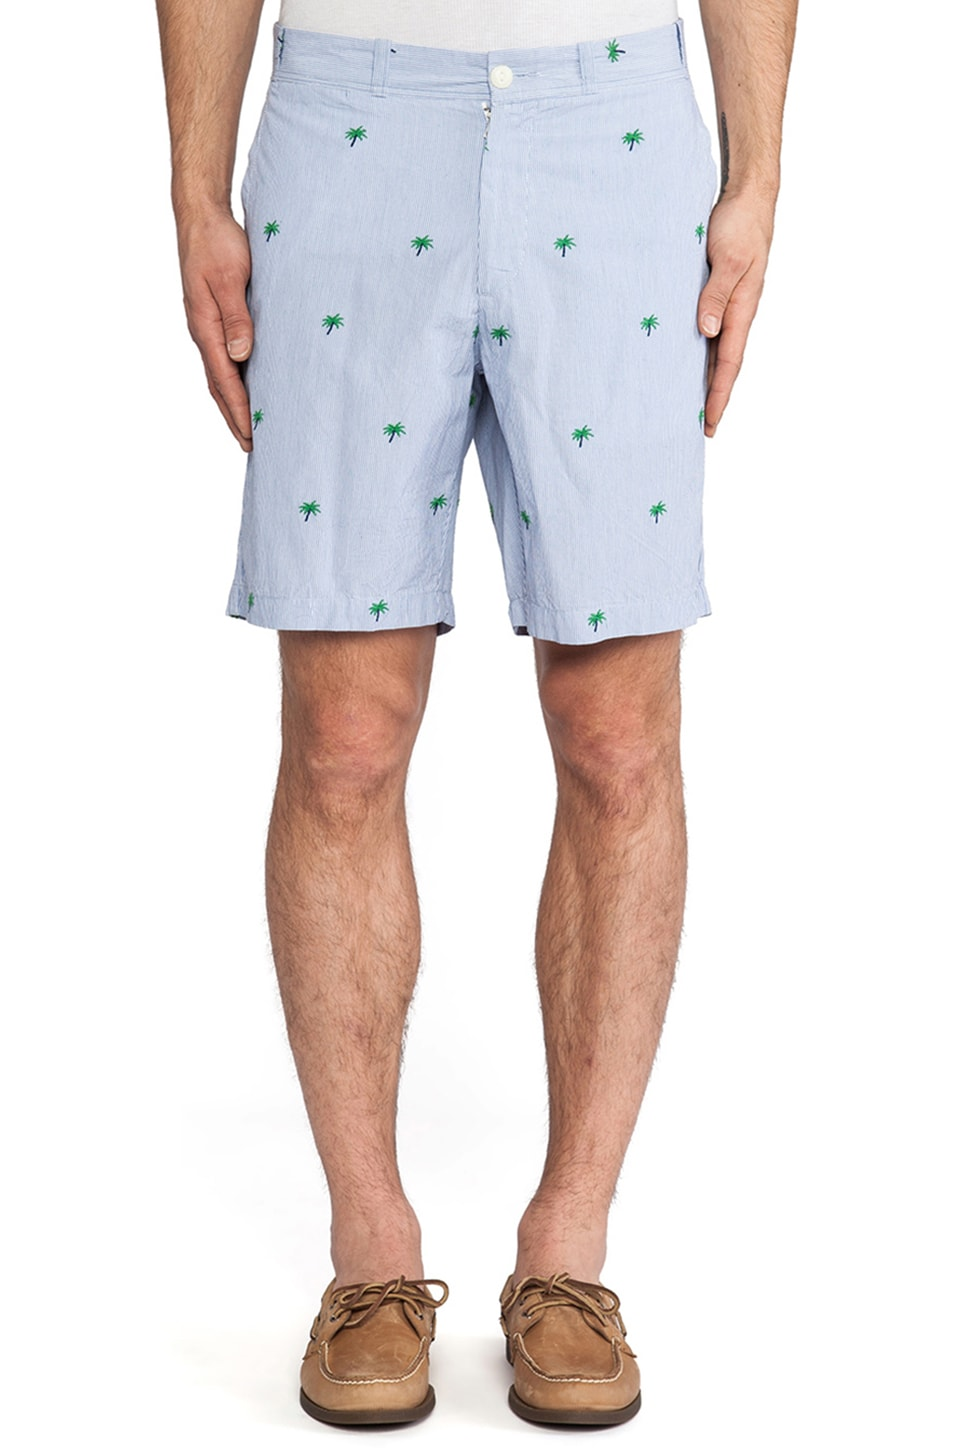 Burkman Bros. Drawcord Short in Stripe & Palm